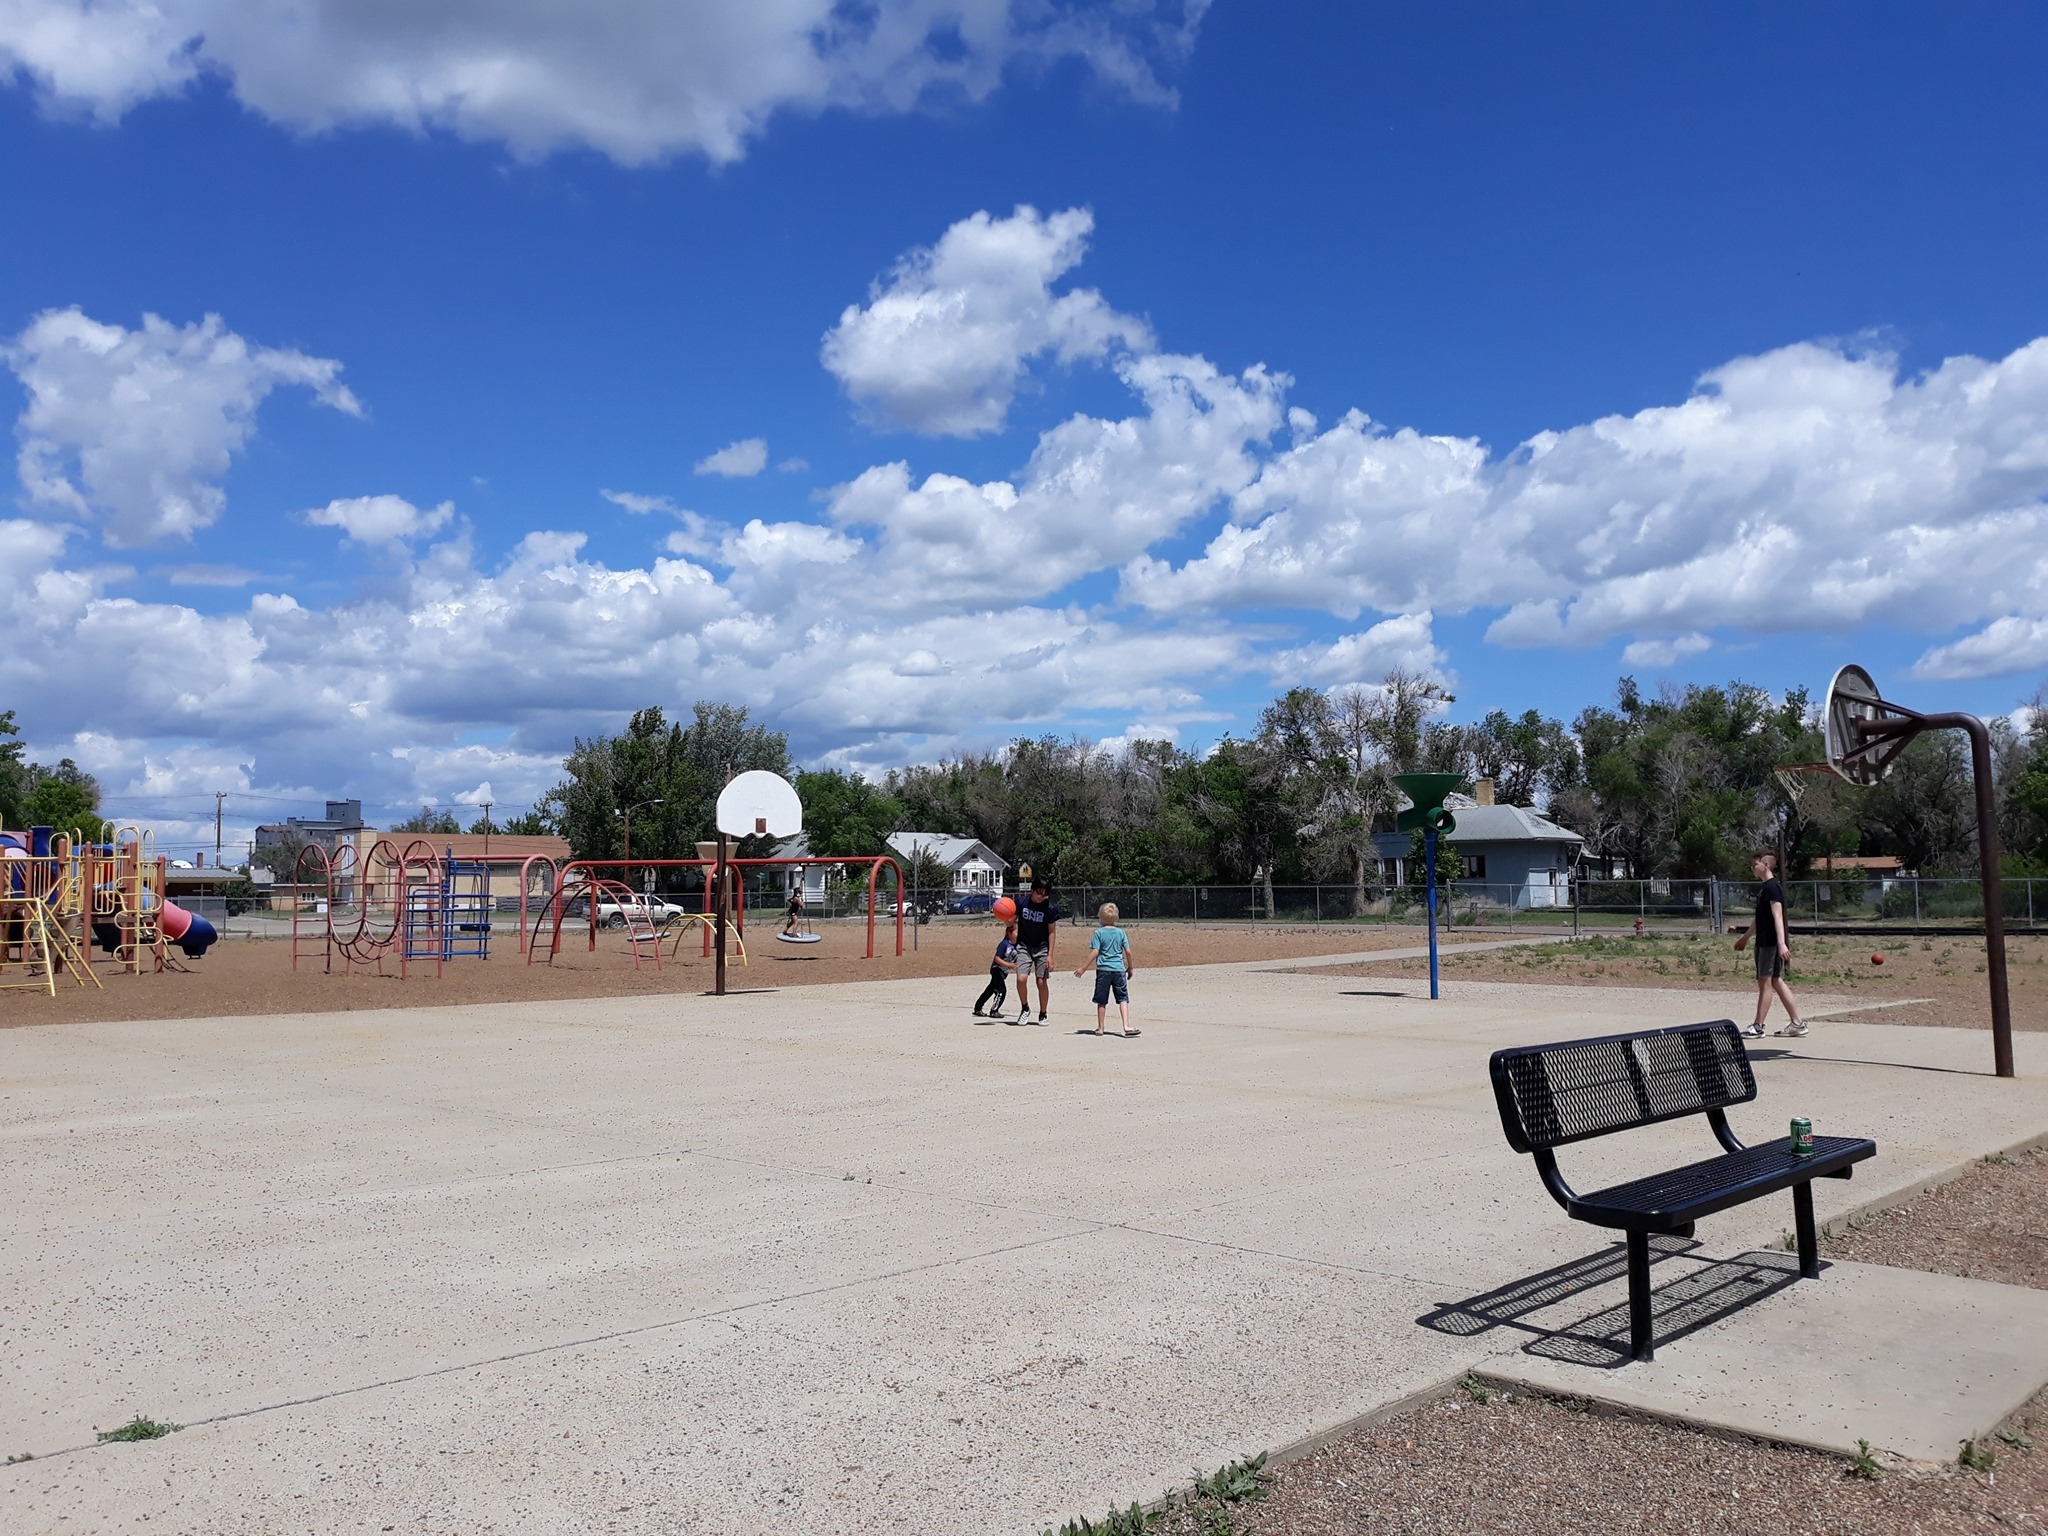 Southside Elementary playground on a sunny day